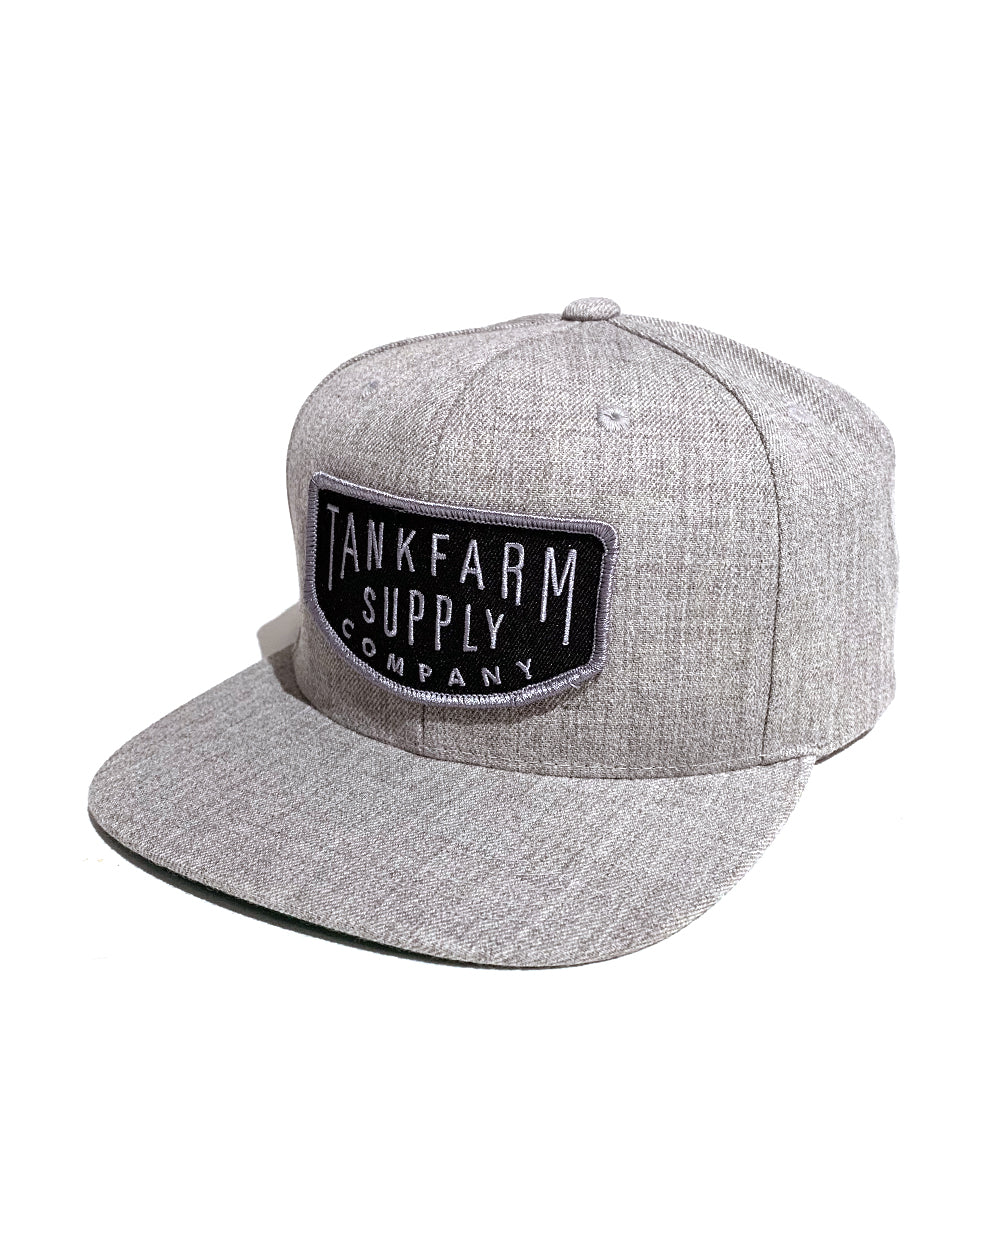 TANKFARM STANDARD BRAND SNAPBACK - HEATHER GREY